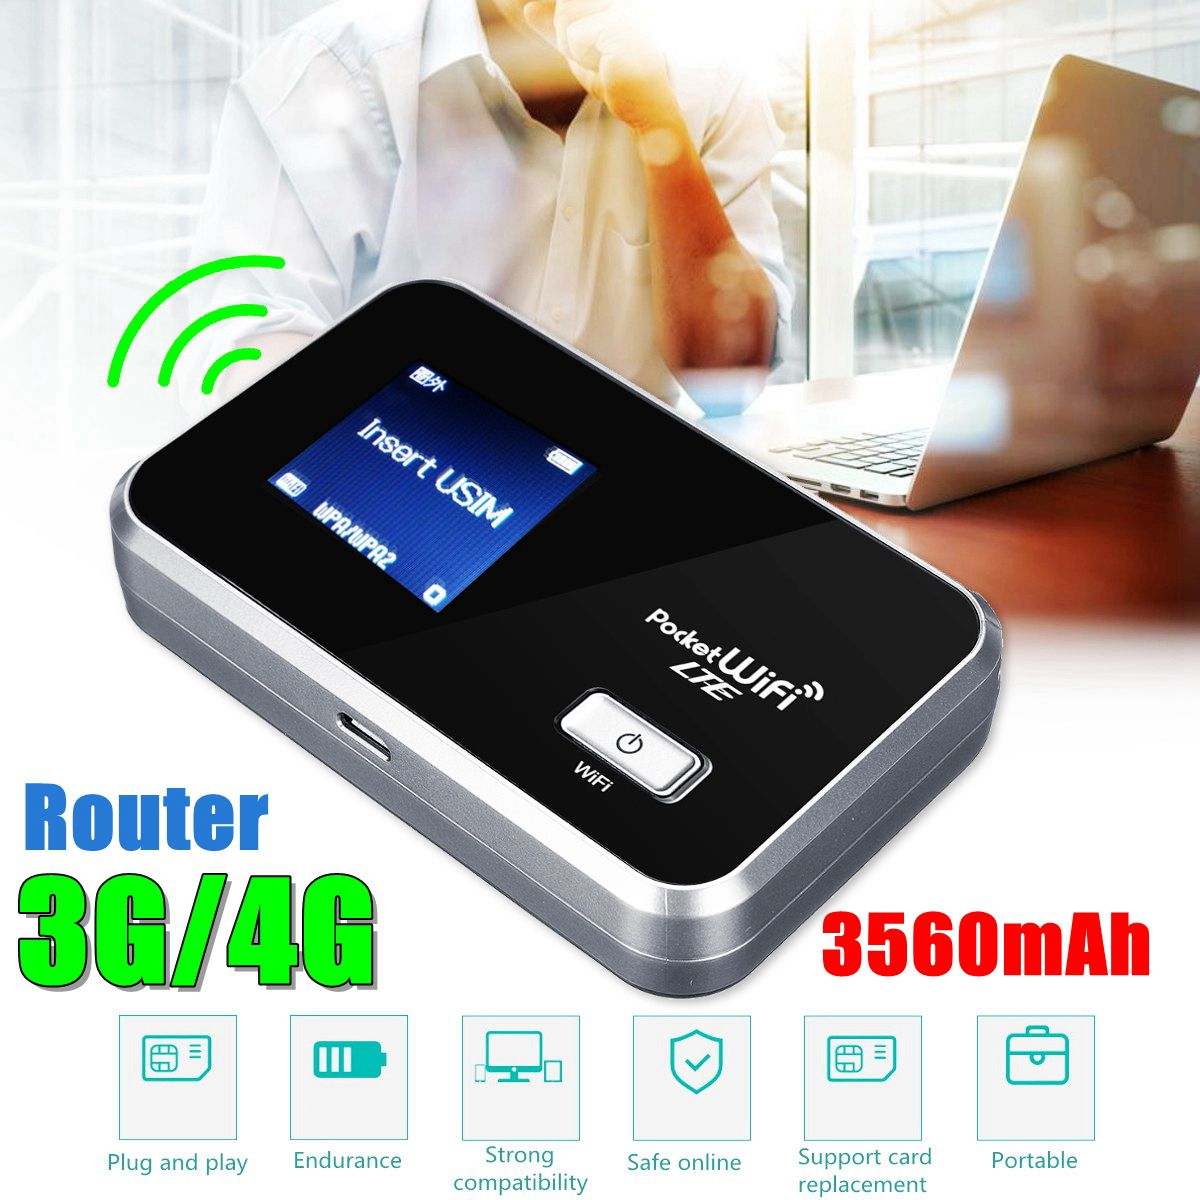 LEORY Router portable WIFI 3g 2100/1700 4g 1700MHz Battery 3560mAh 4G LTE Cat4 Mobile Hotspot